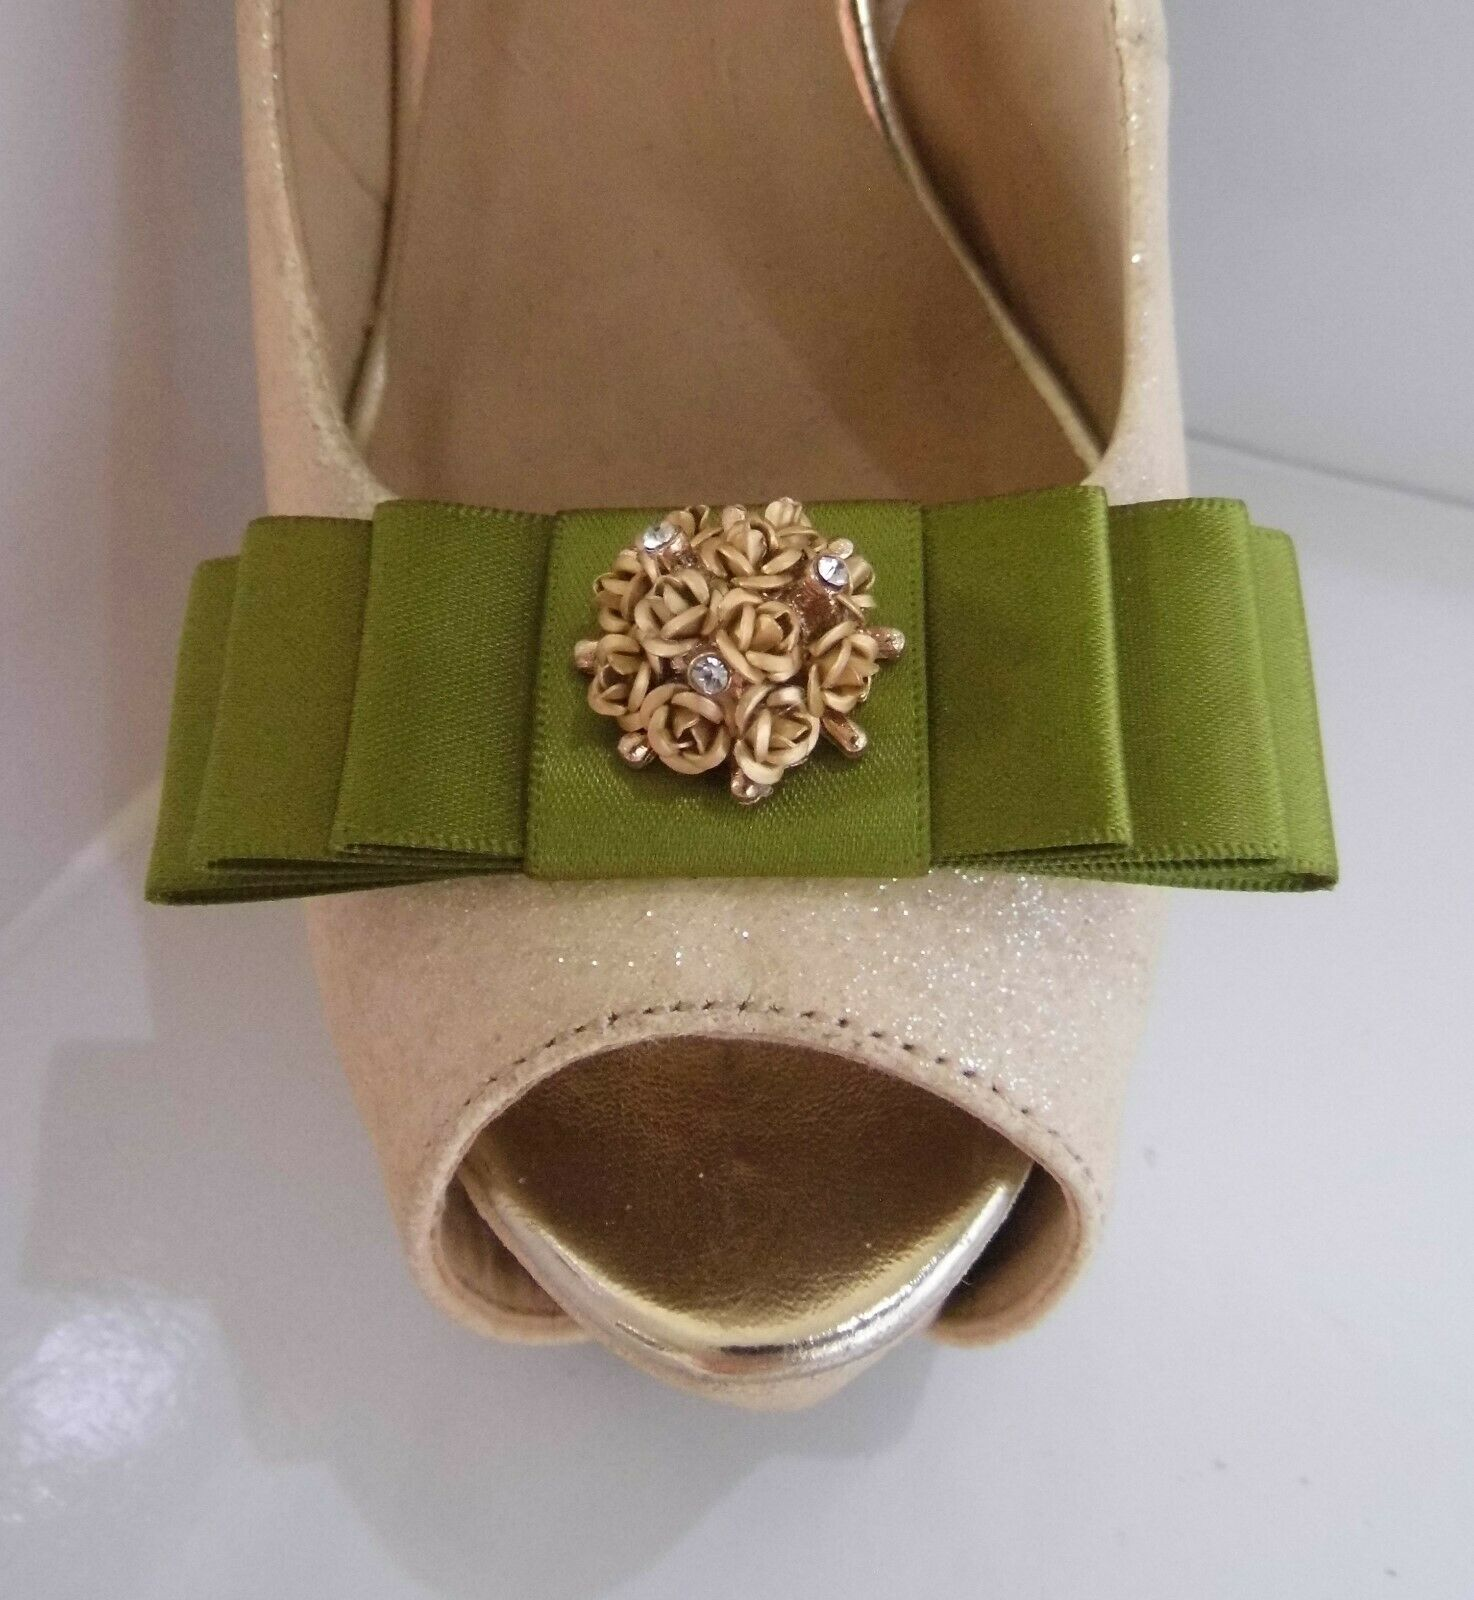 2 Moss Green Bow Clips for Shoes with Gold Flower Cluster & Diamante Centre